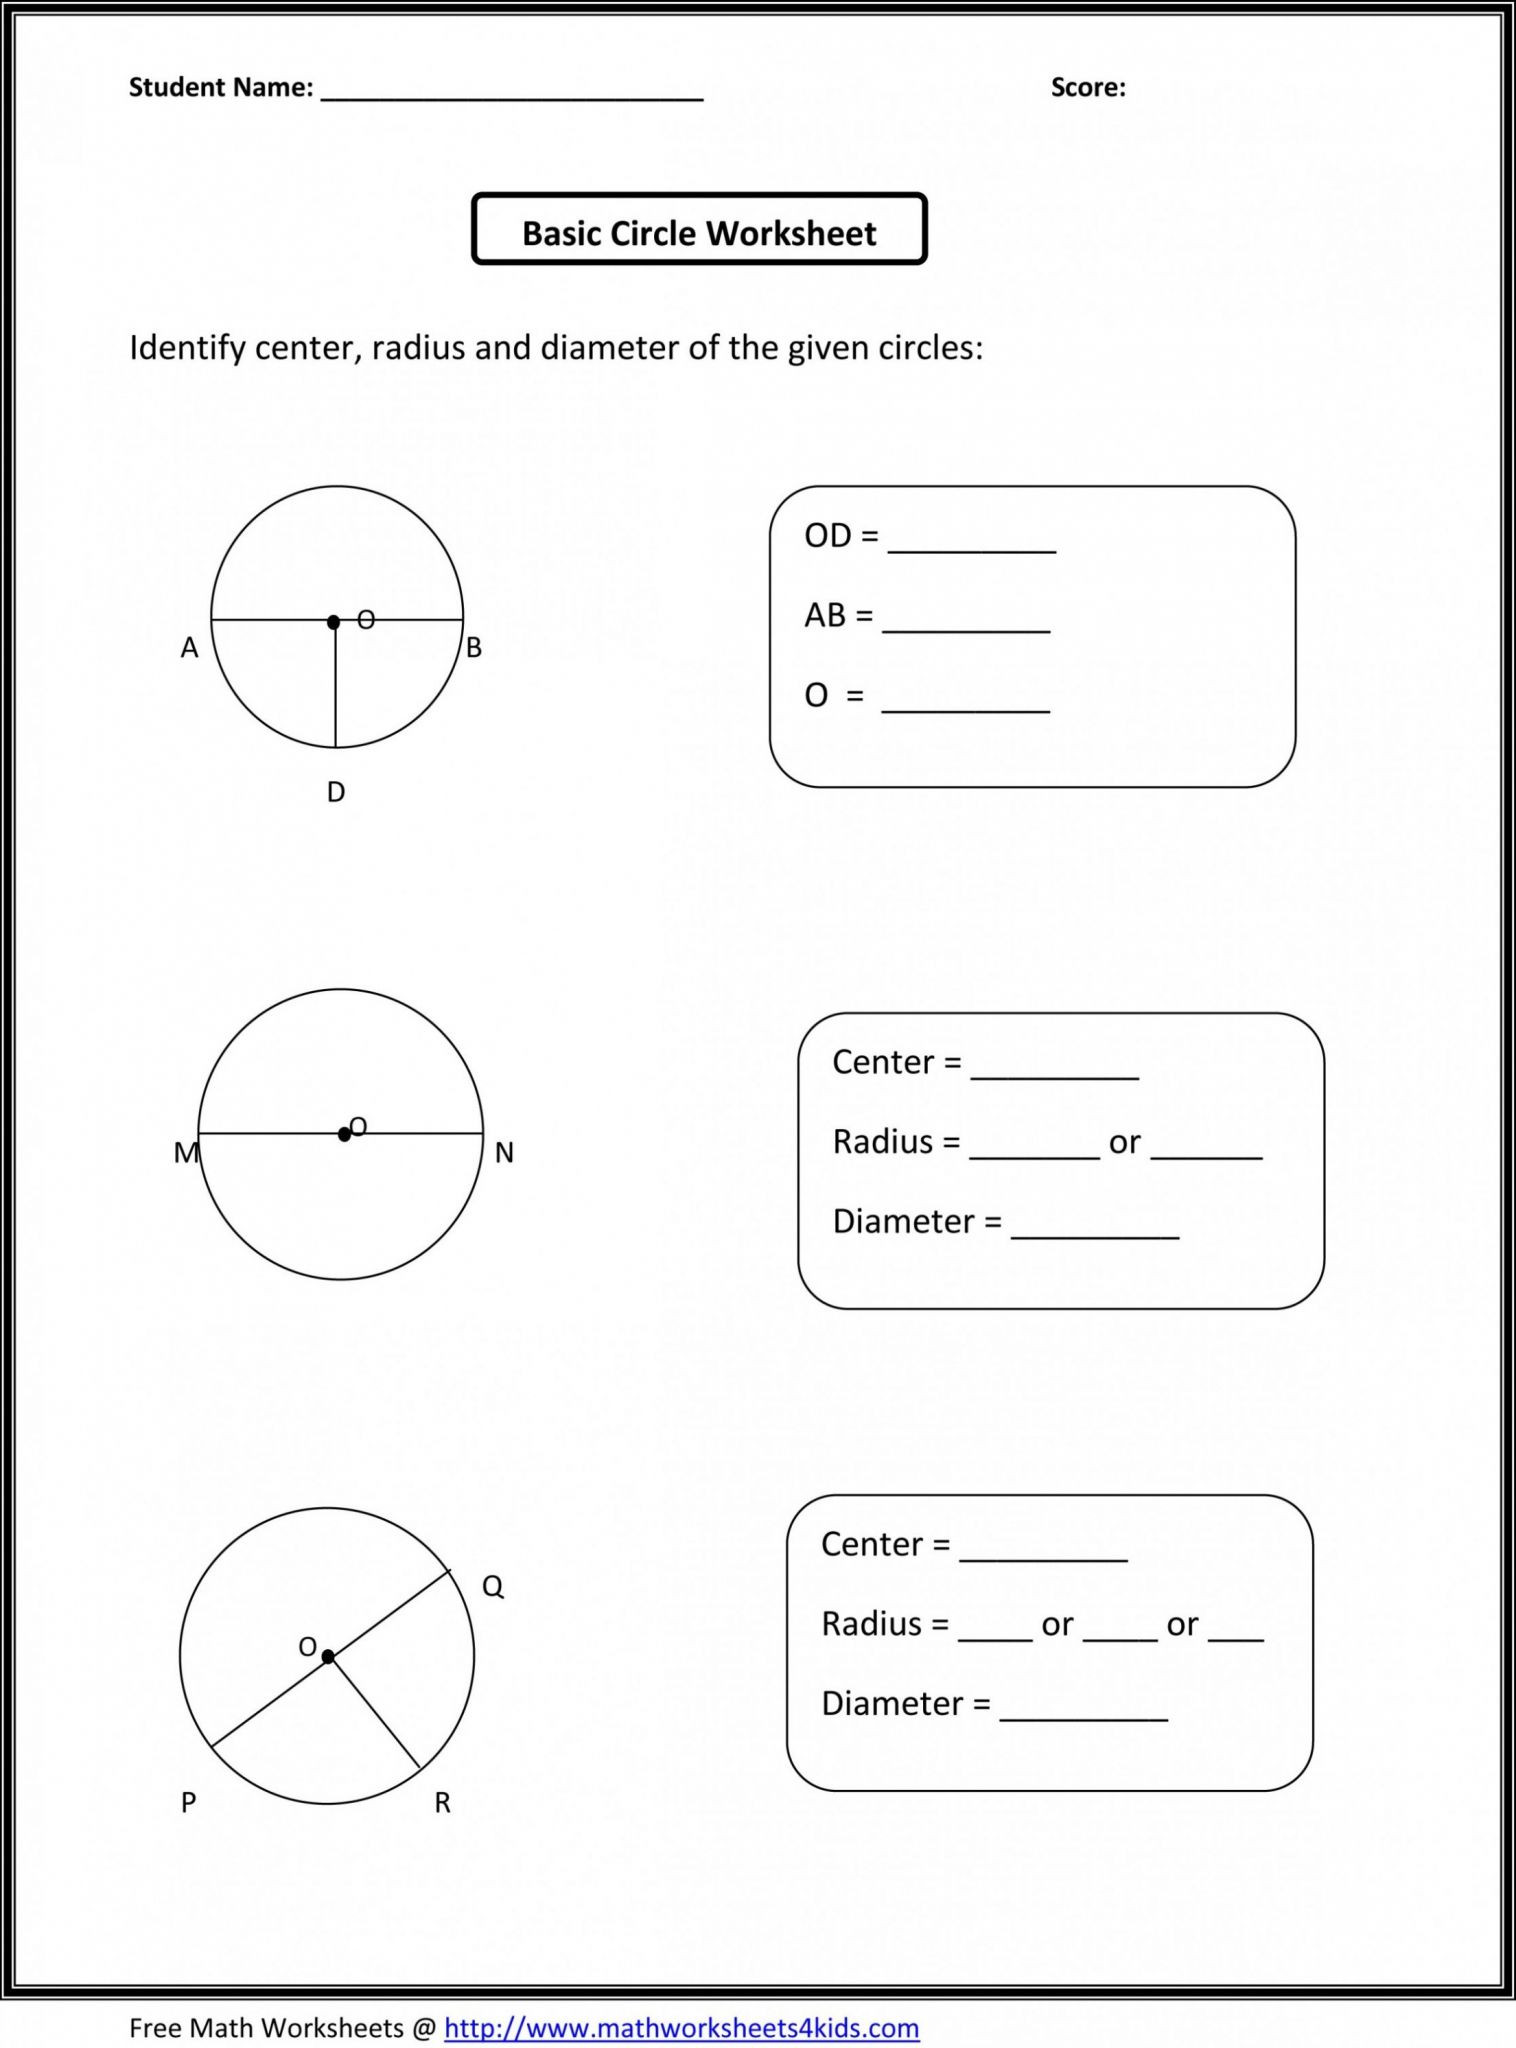 Tape Diagram Worksheets 6th Grade More with Tape Diagrams Worksheet